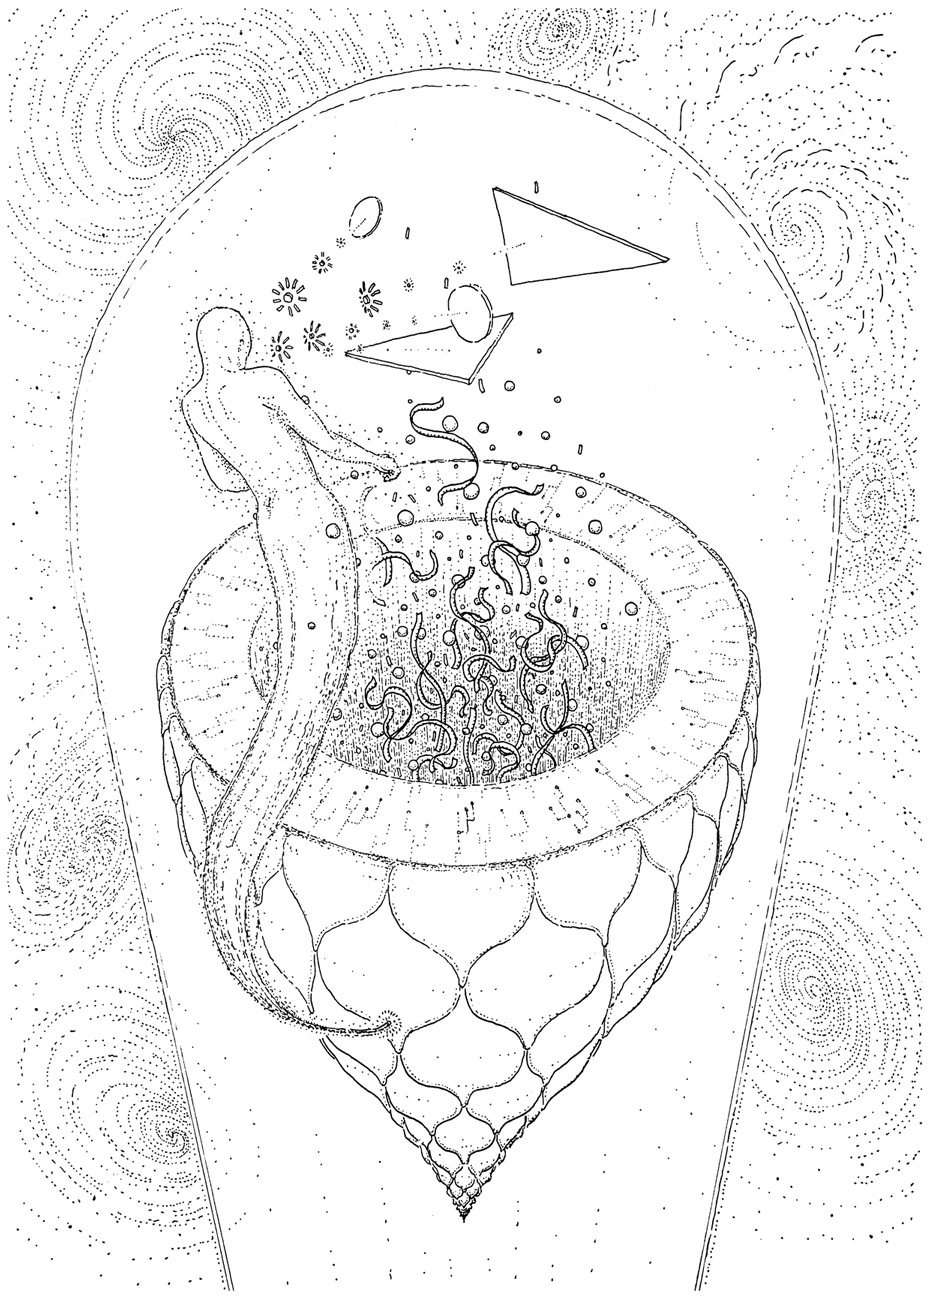 The creators, drawing by DMT vision